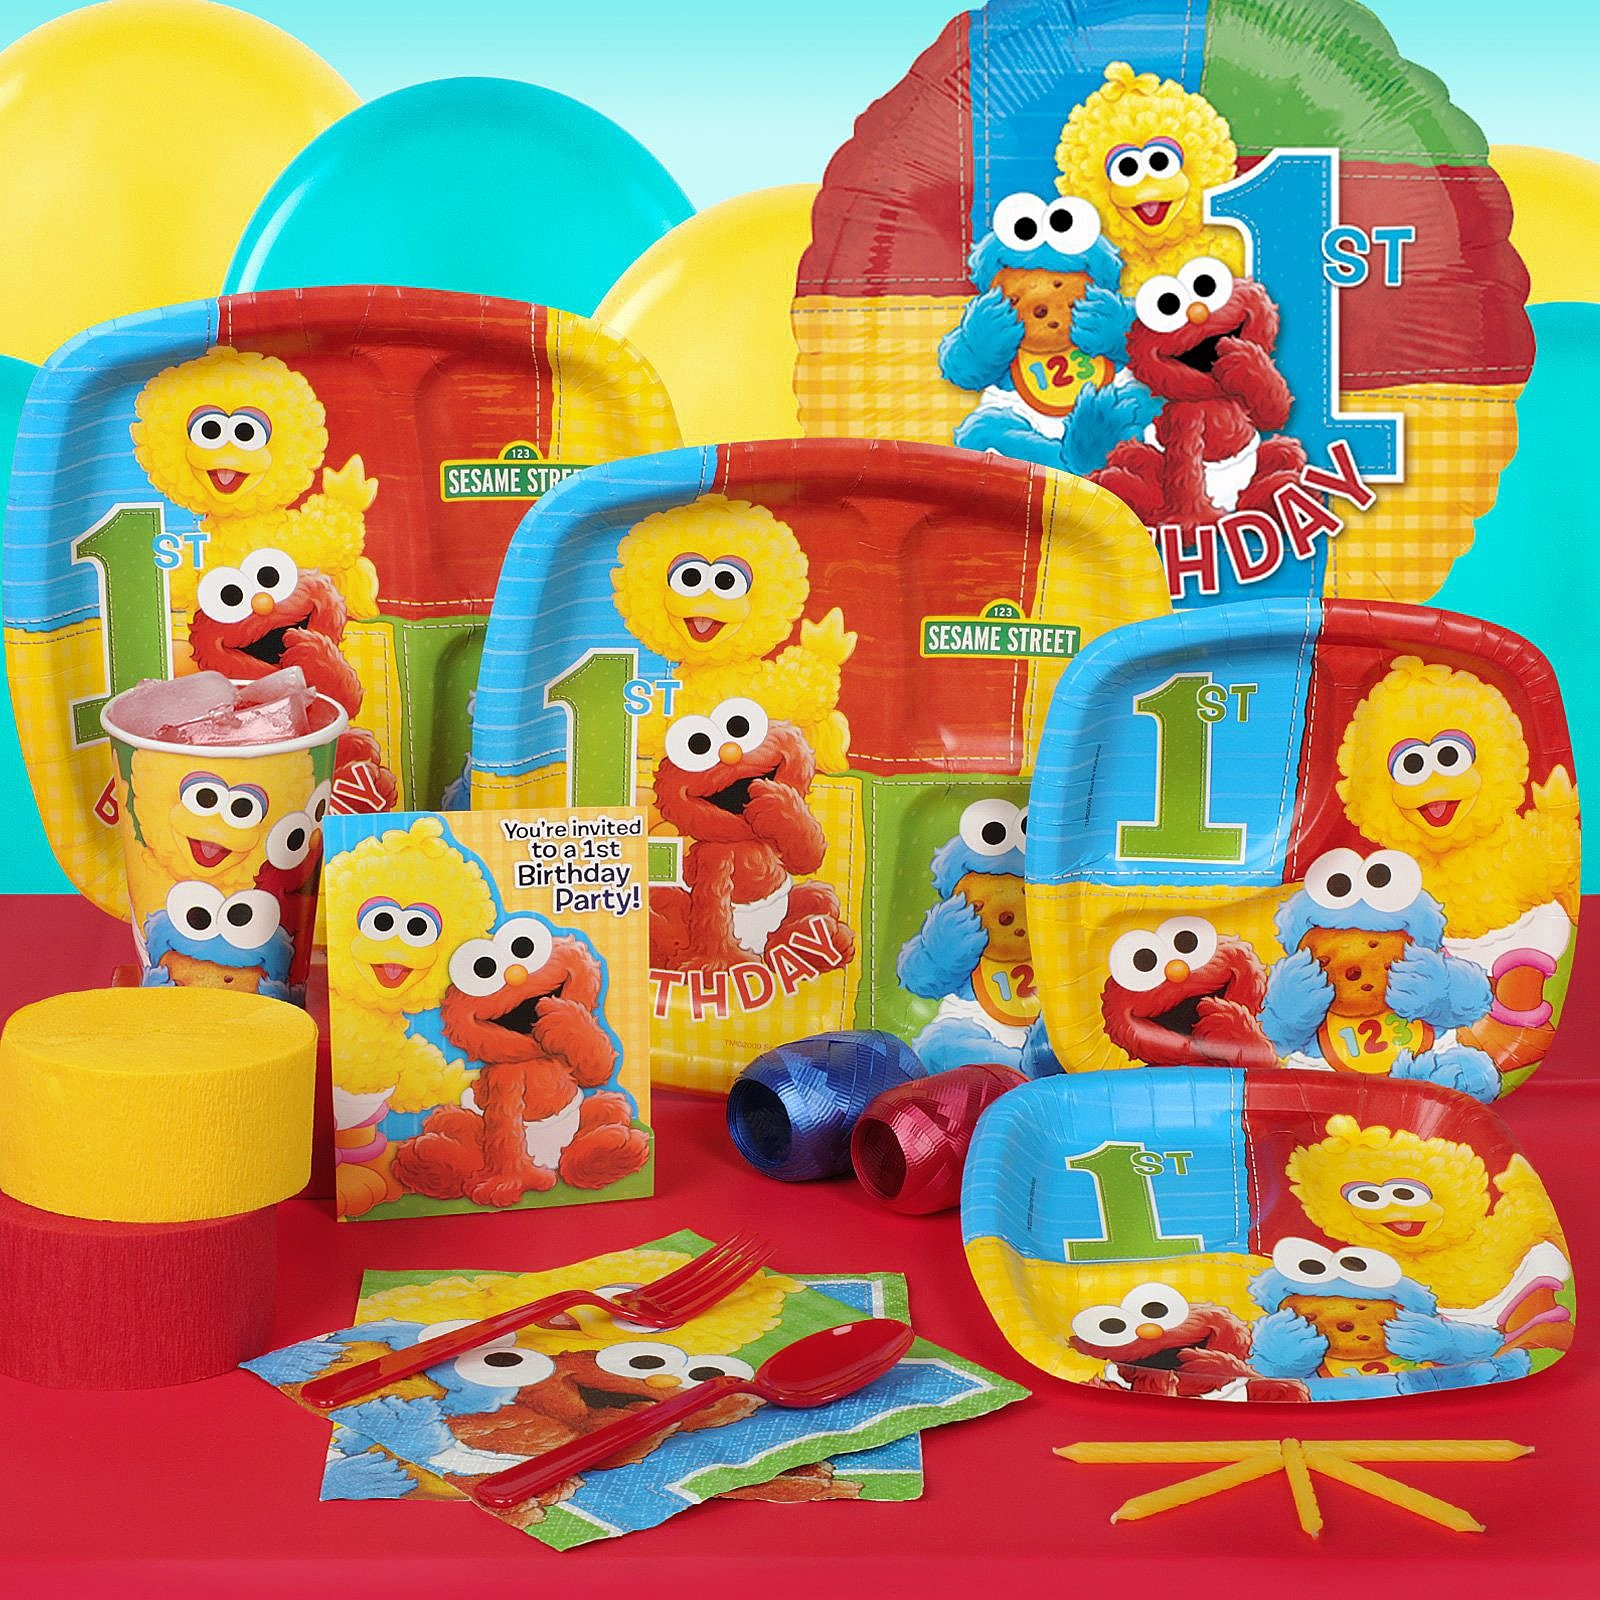 Sesame Street 1st Birthday Party Theme